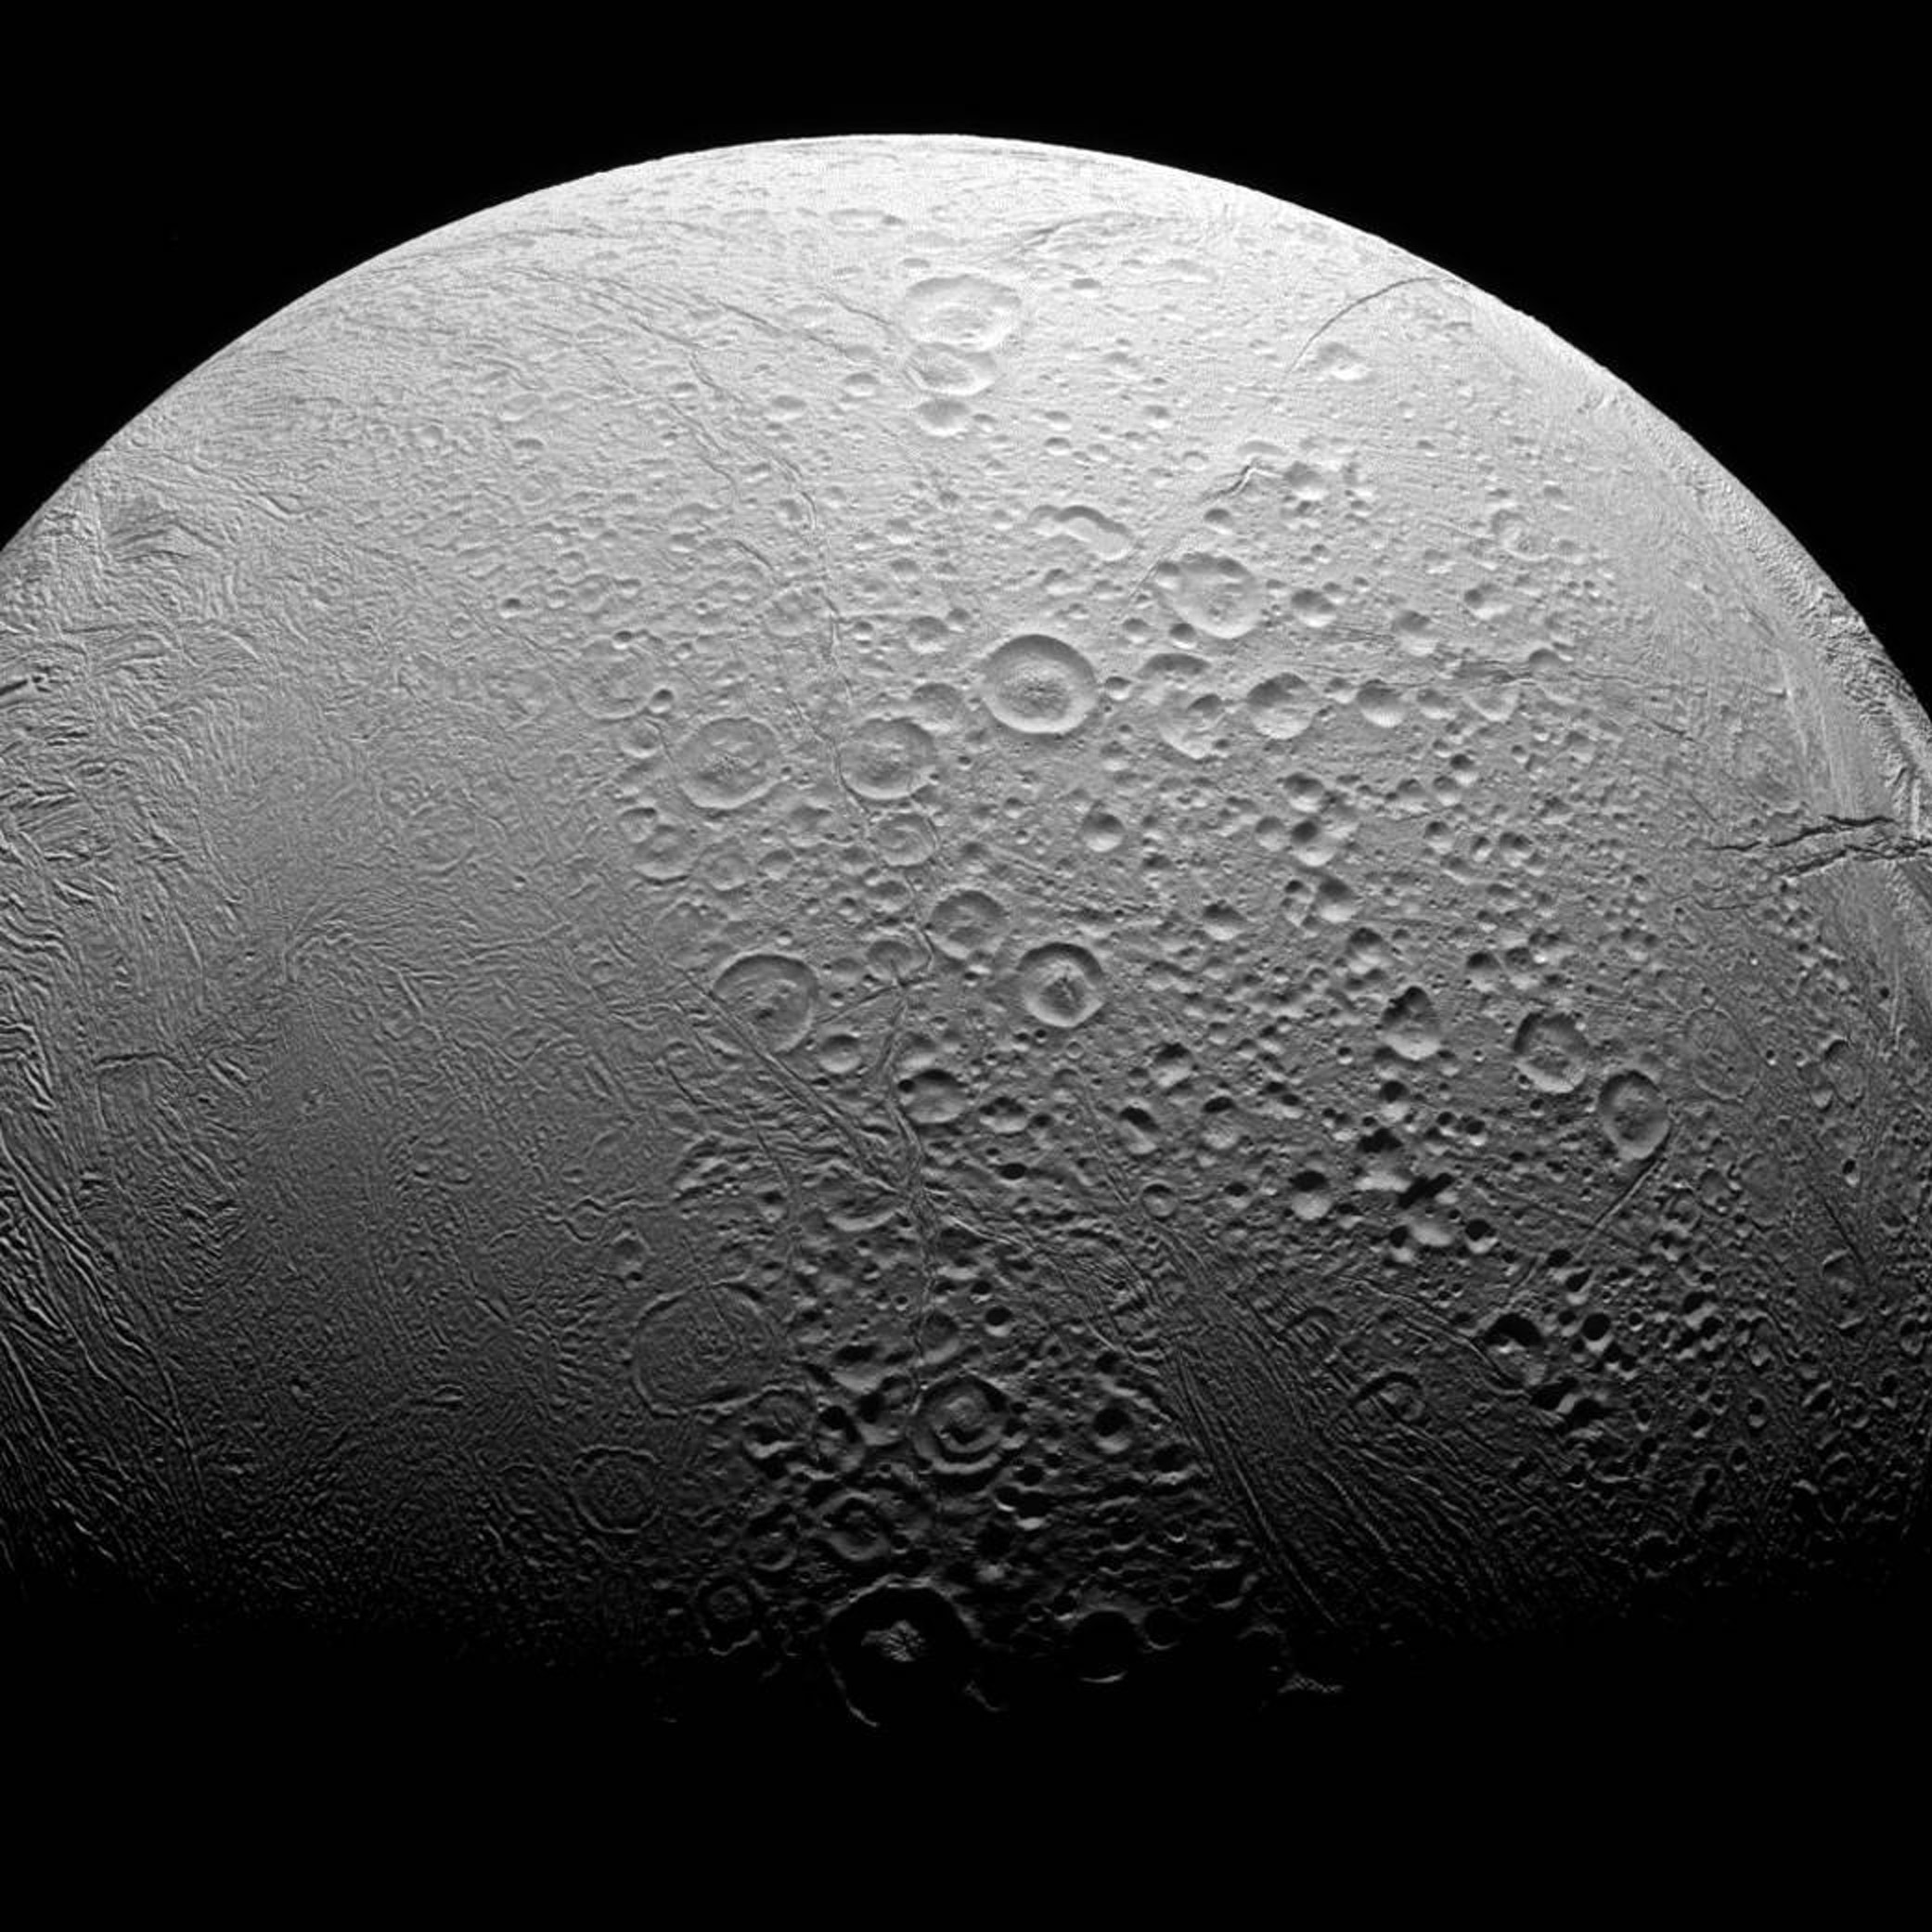 Cassini Snaps a Wrinkly Shot of a Moon Which Might Have Alien Life